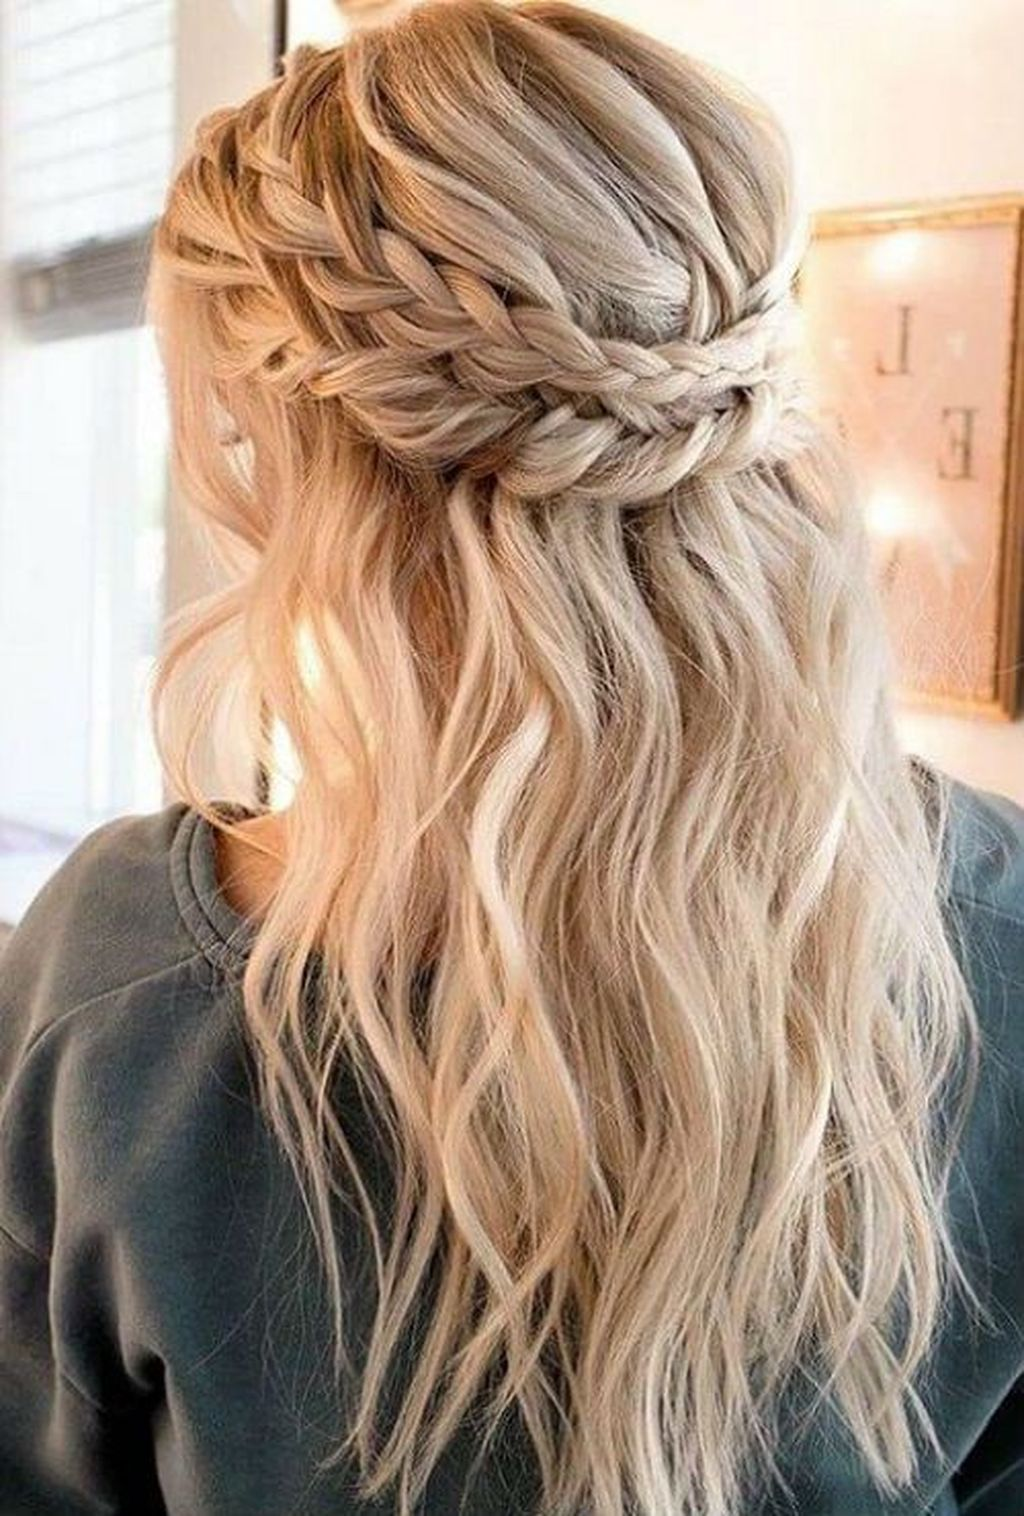 37 Lovely Hairstyles Ideas For Girl Braided Hairstyles For Wedding Braids For Long Hair Prom Hairstyles For Long Hair